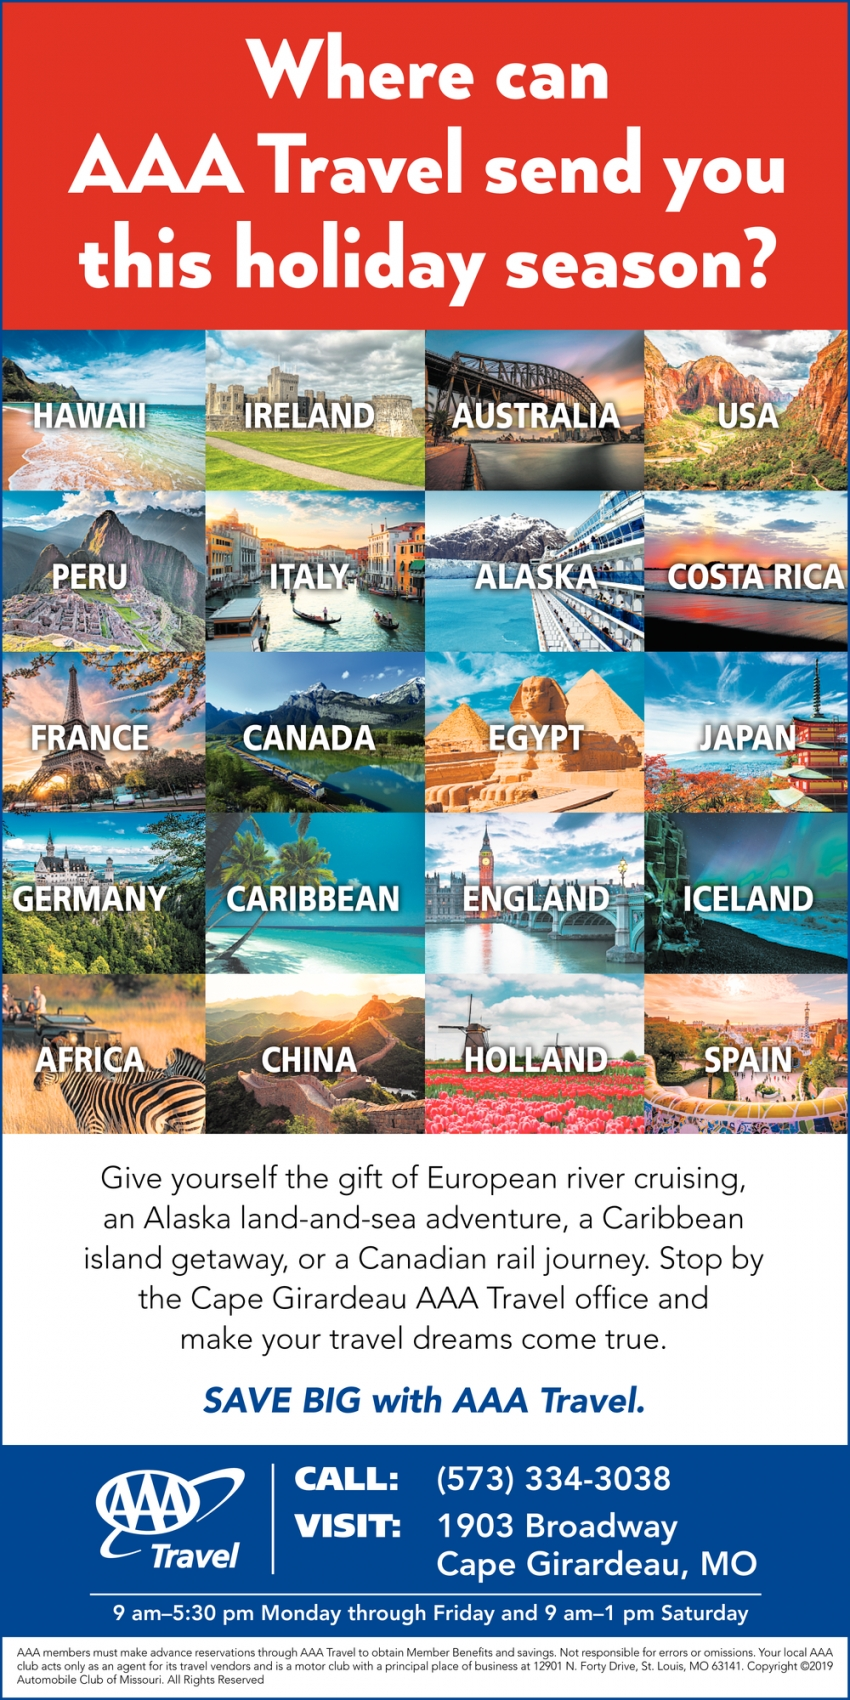 Where can AAA Travel send you this holiday season?